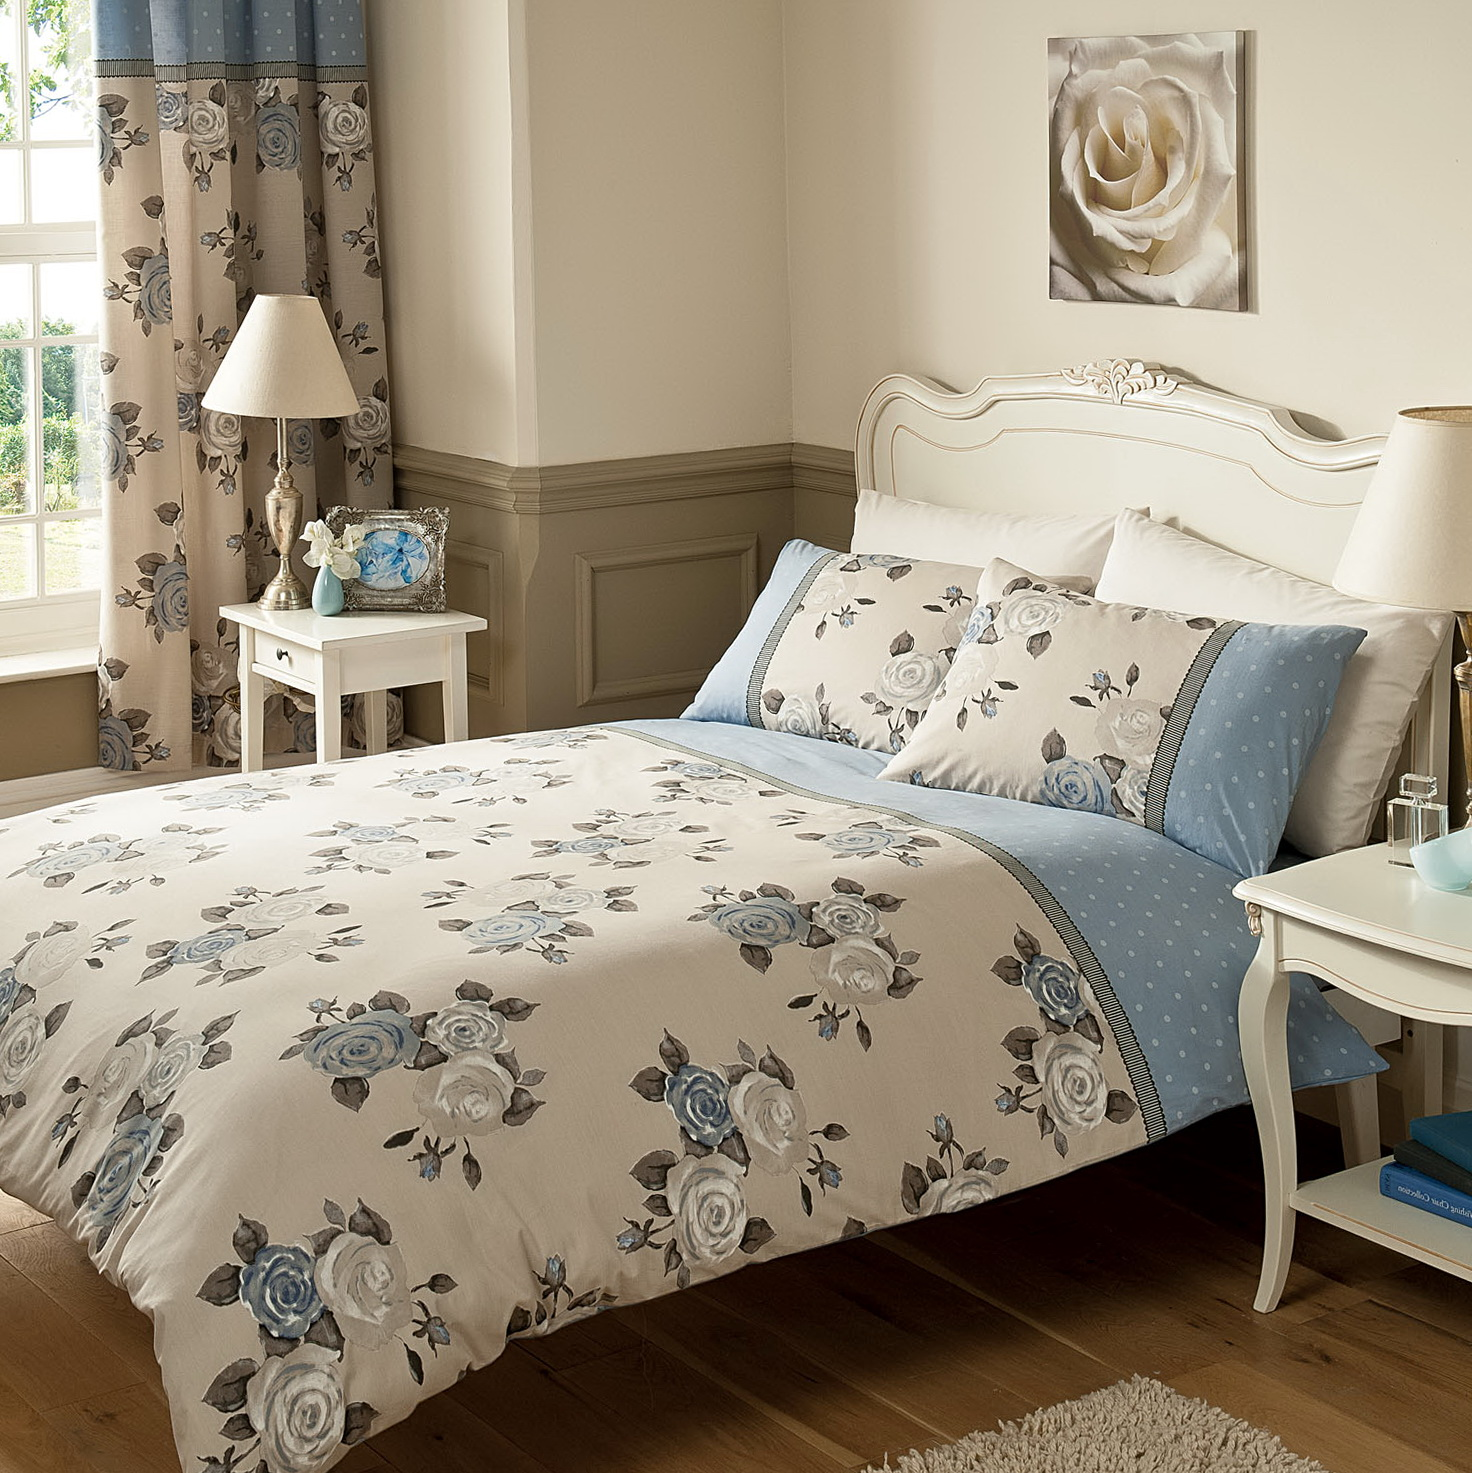 Bedding And Curtain Sets To Match